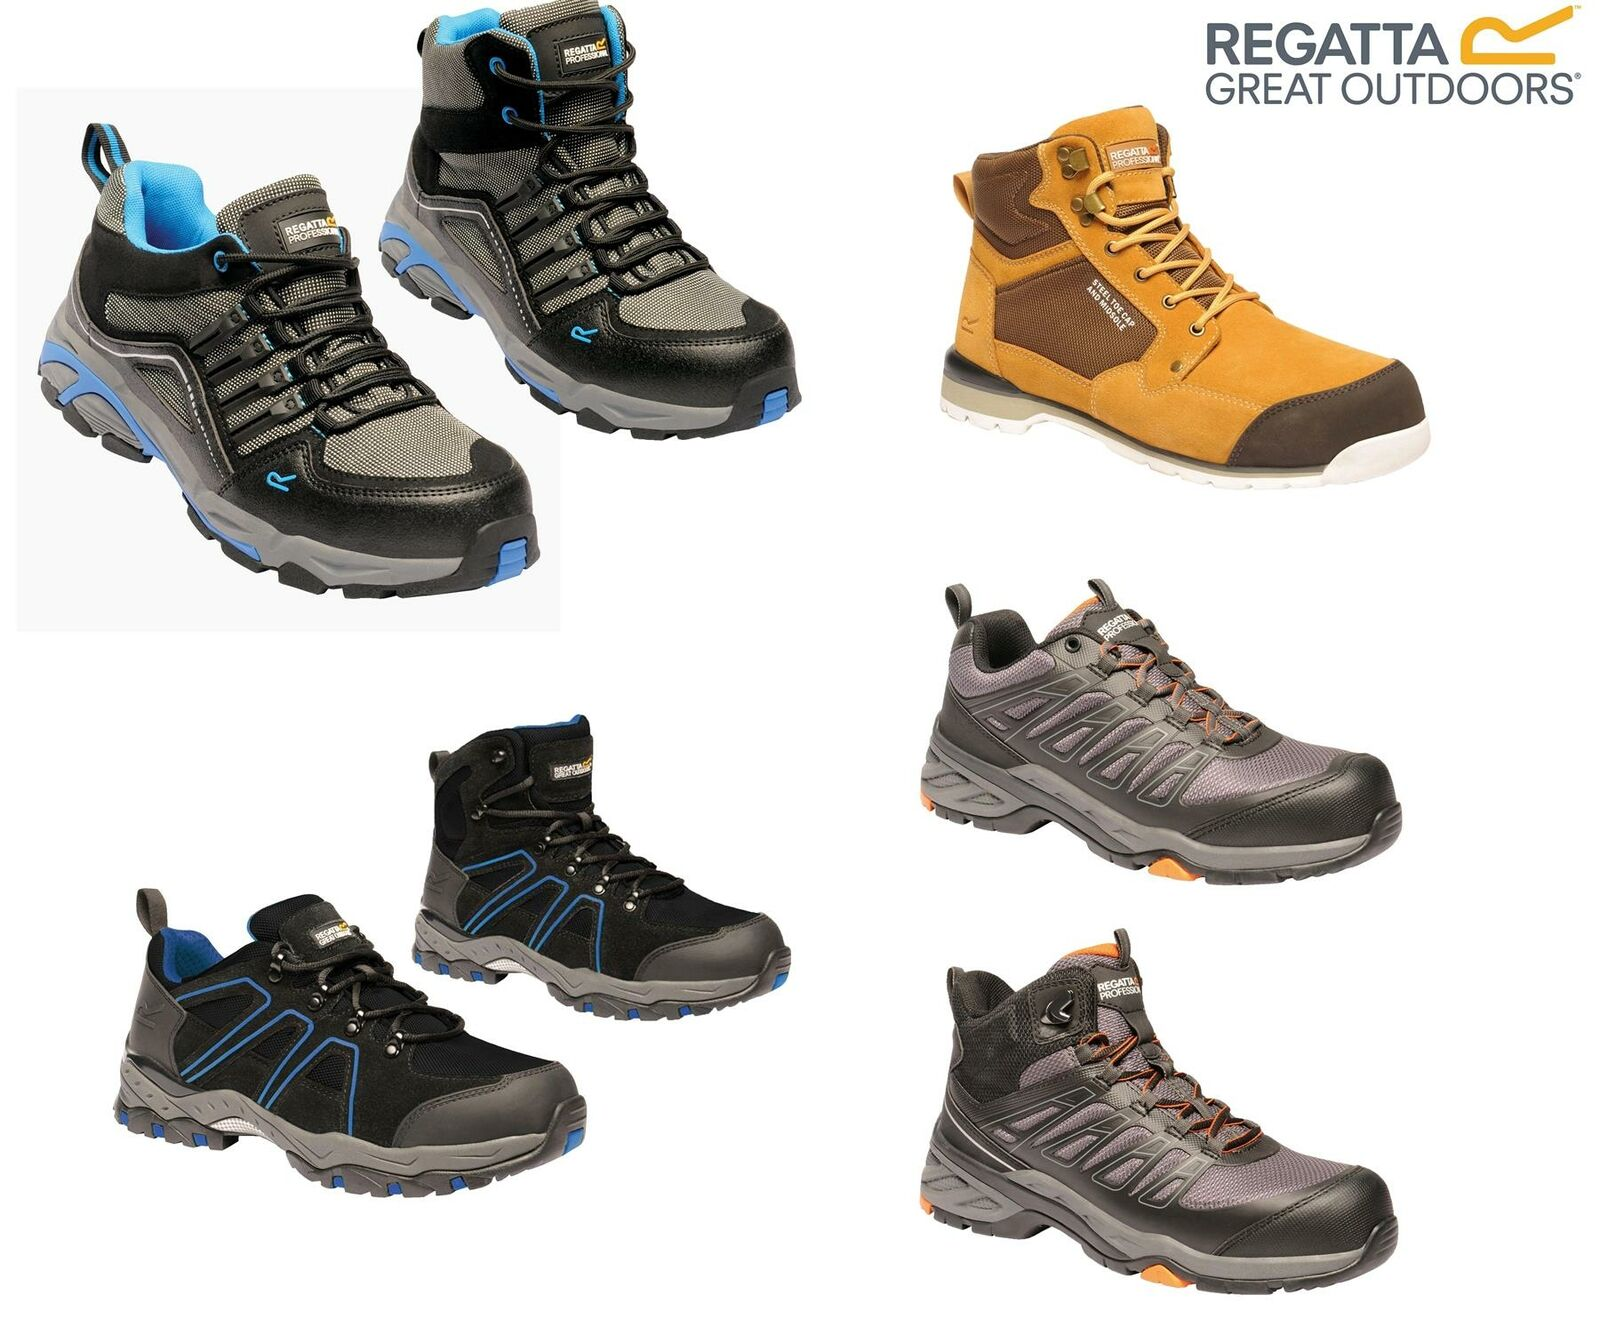 HYMAC Safety BOOTS Rapid Release System